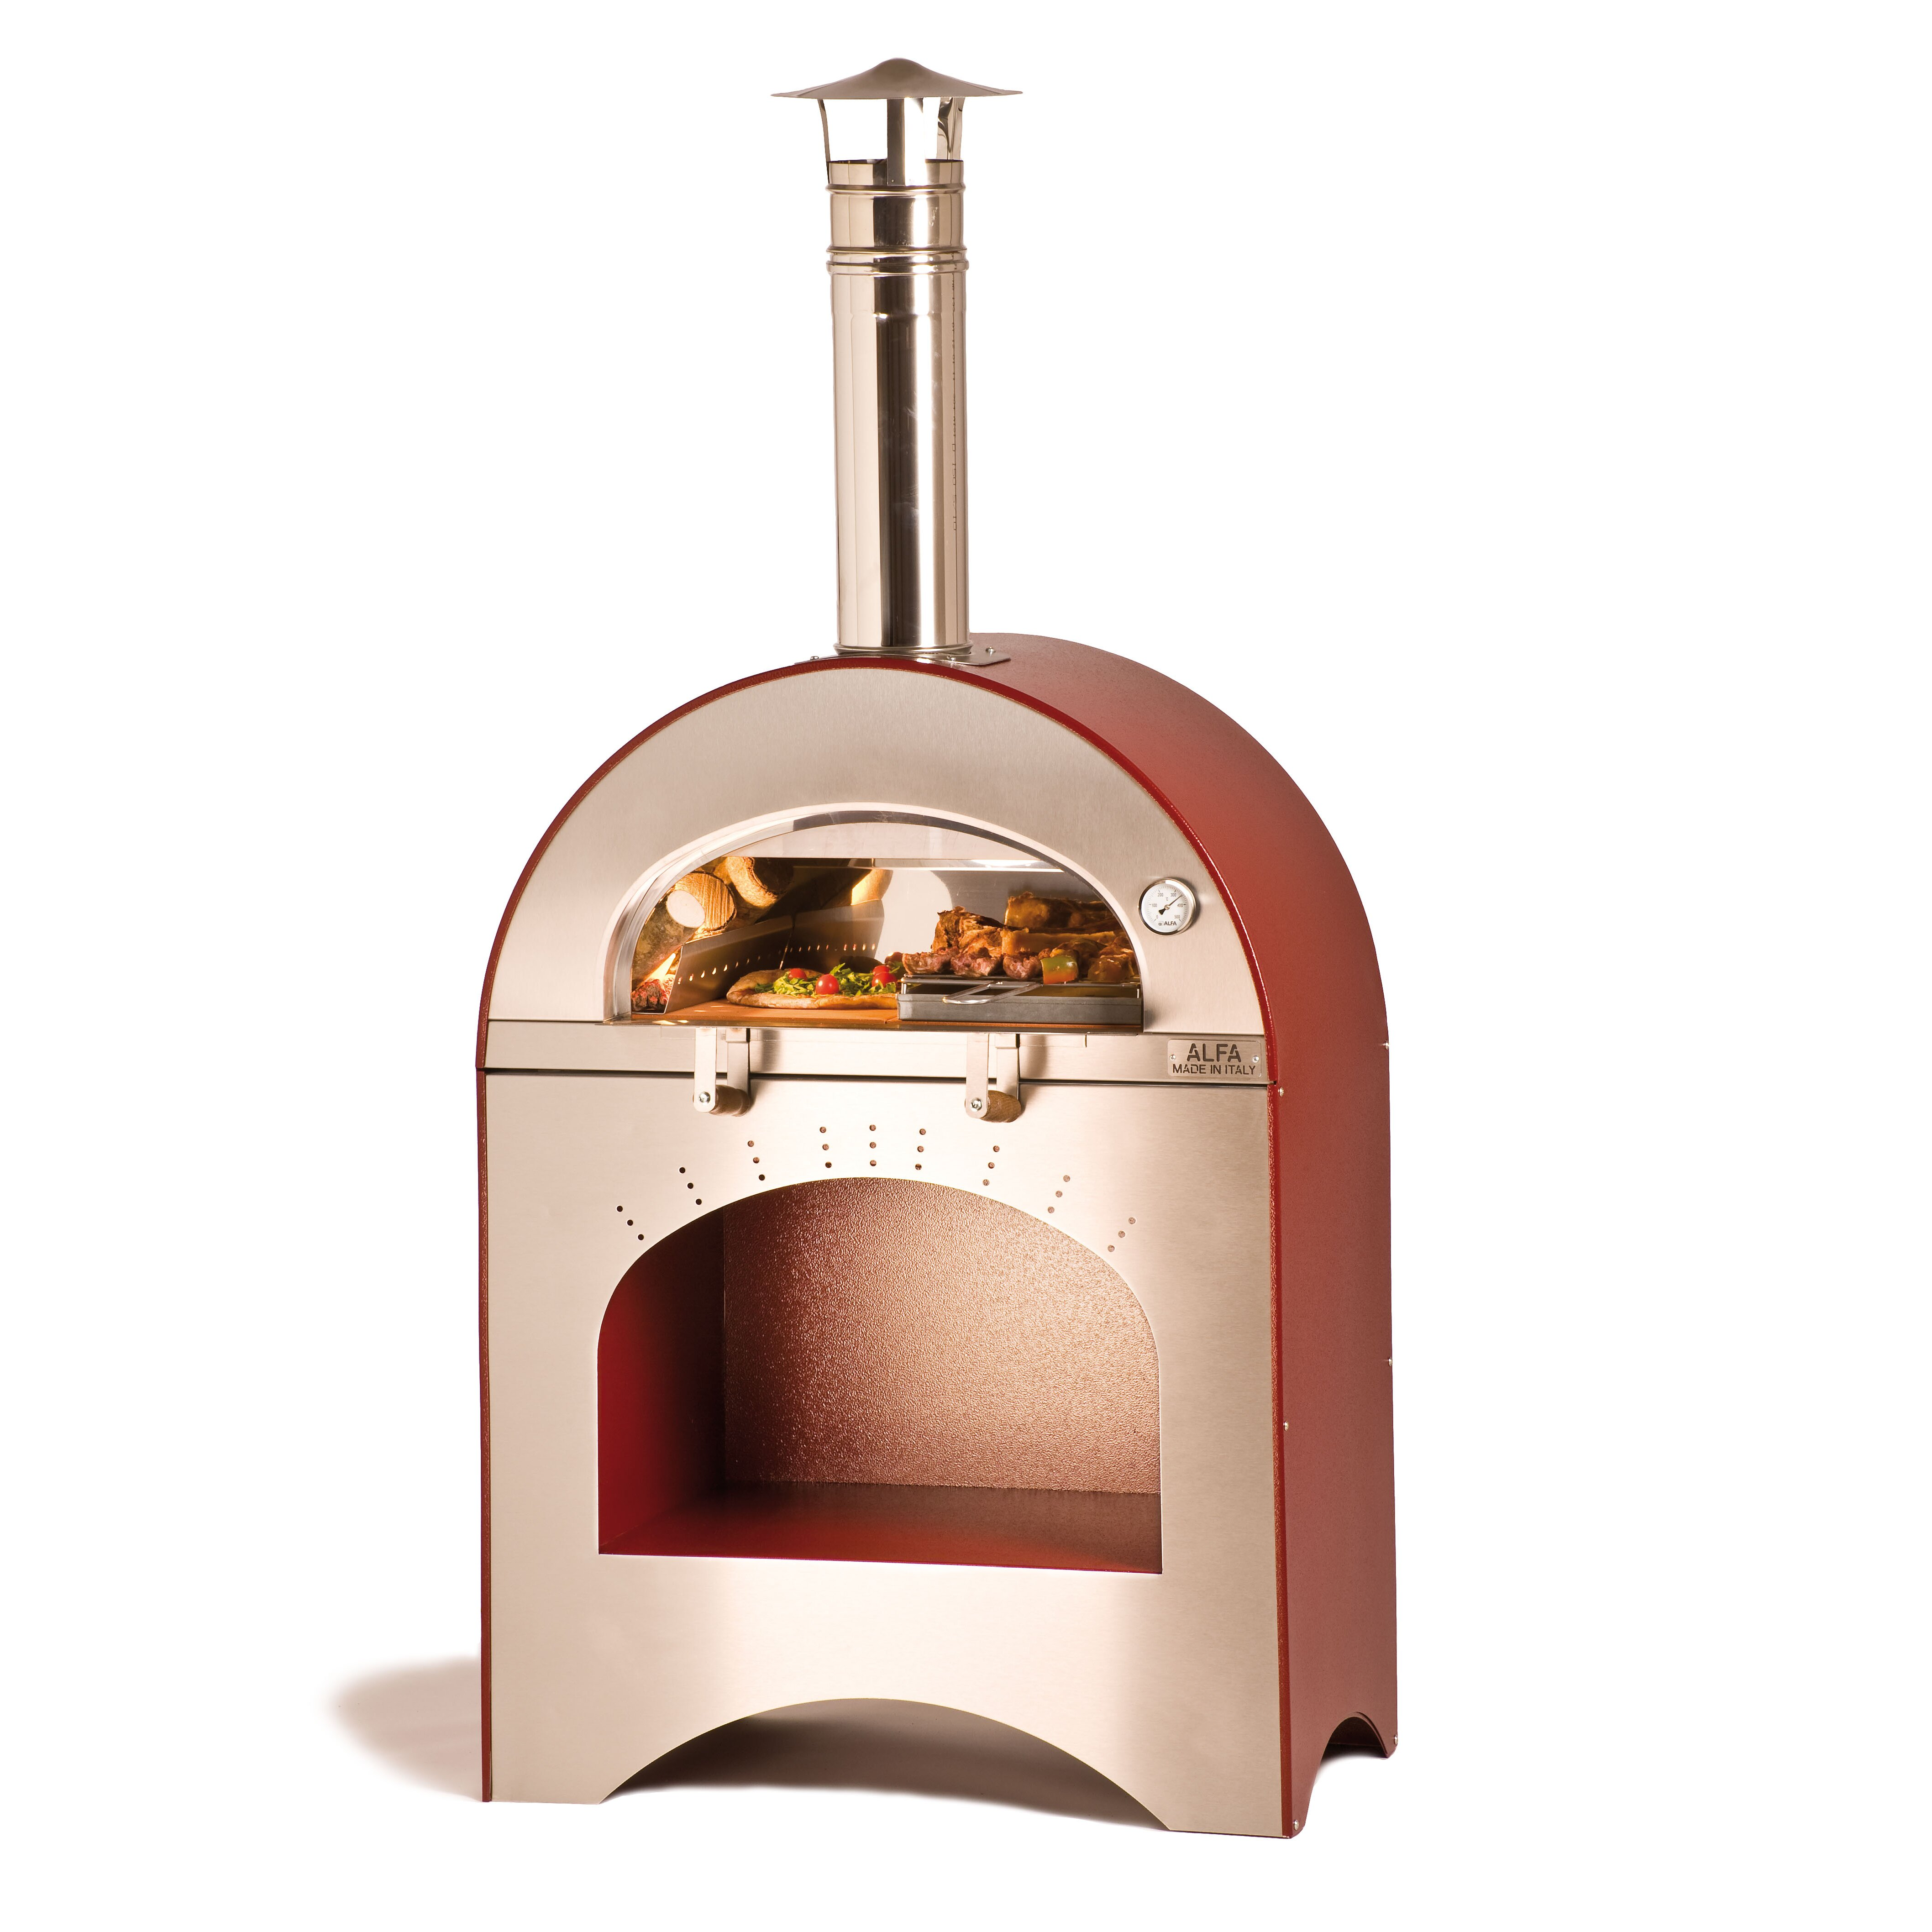 Alfa pizza forno pizza and brace wood burning pizza oven wayfair